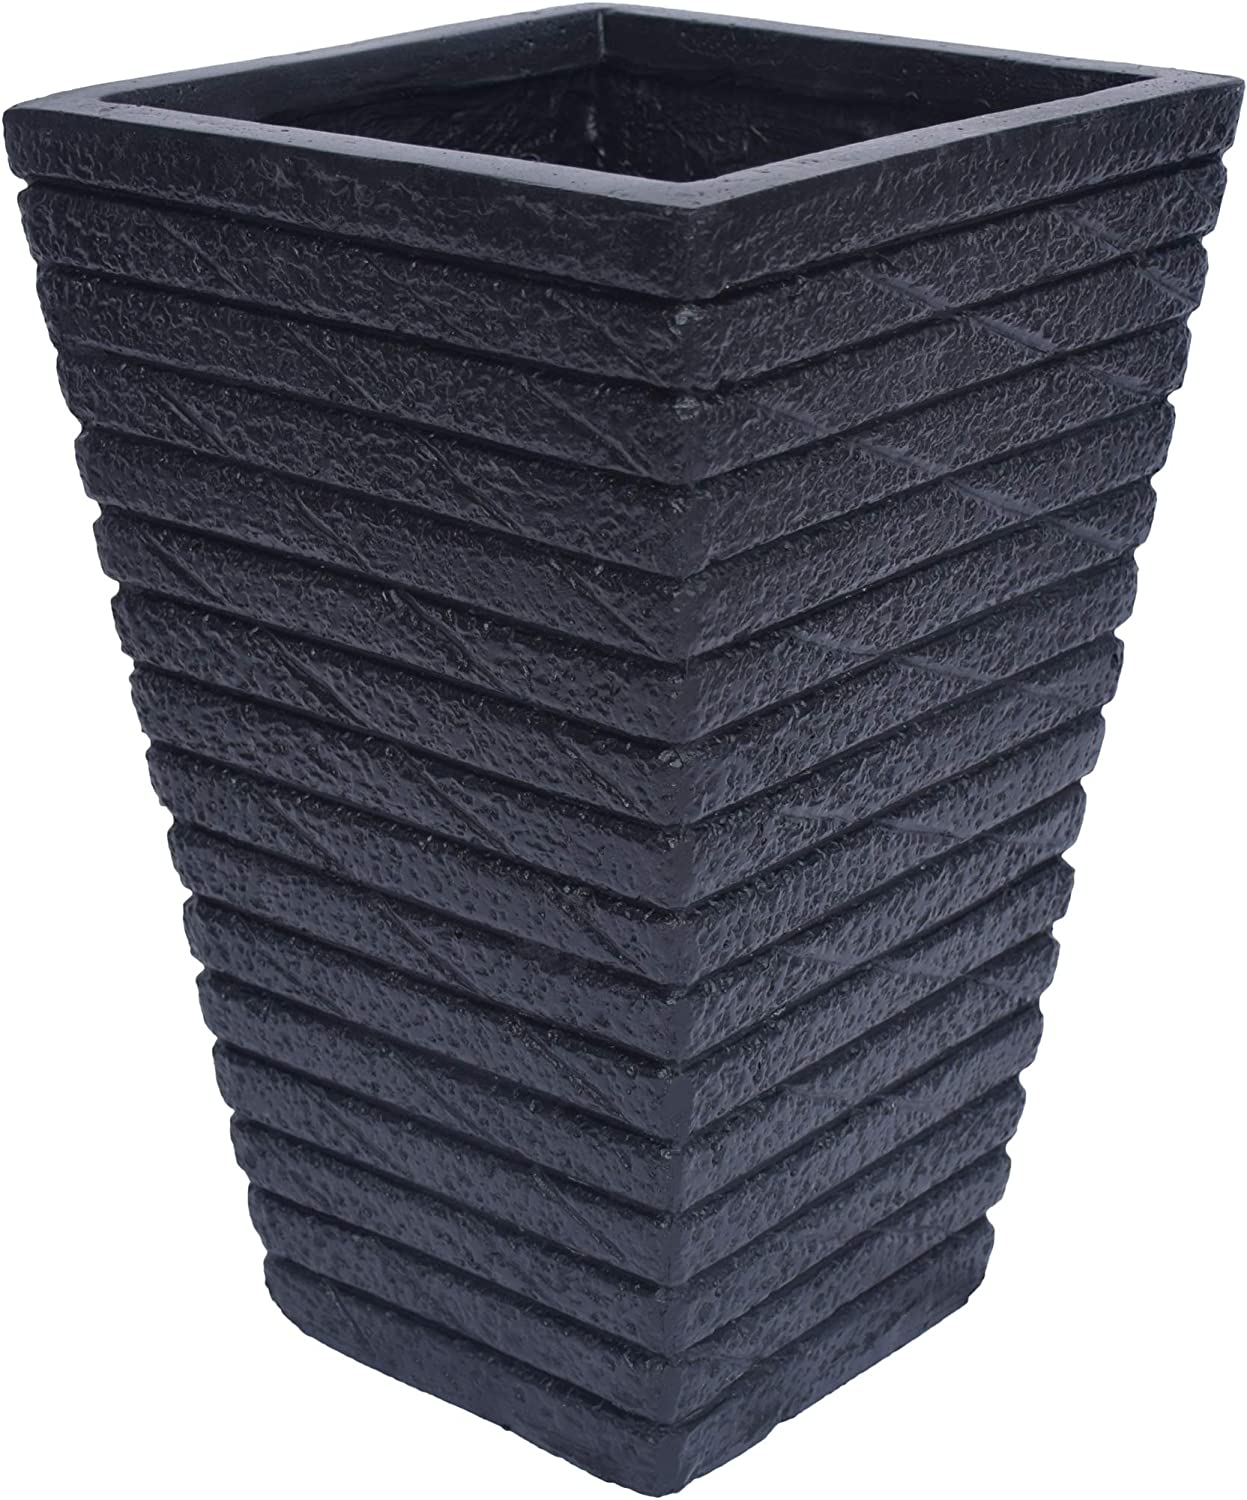 Great Deal Furniture Hedy Garden お買得 R Tapered Planter Square Urn 信頼